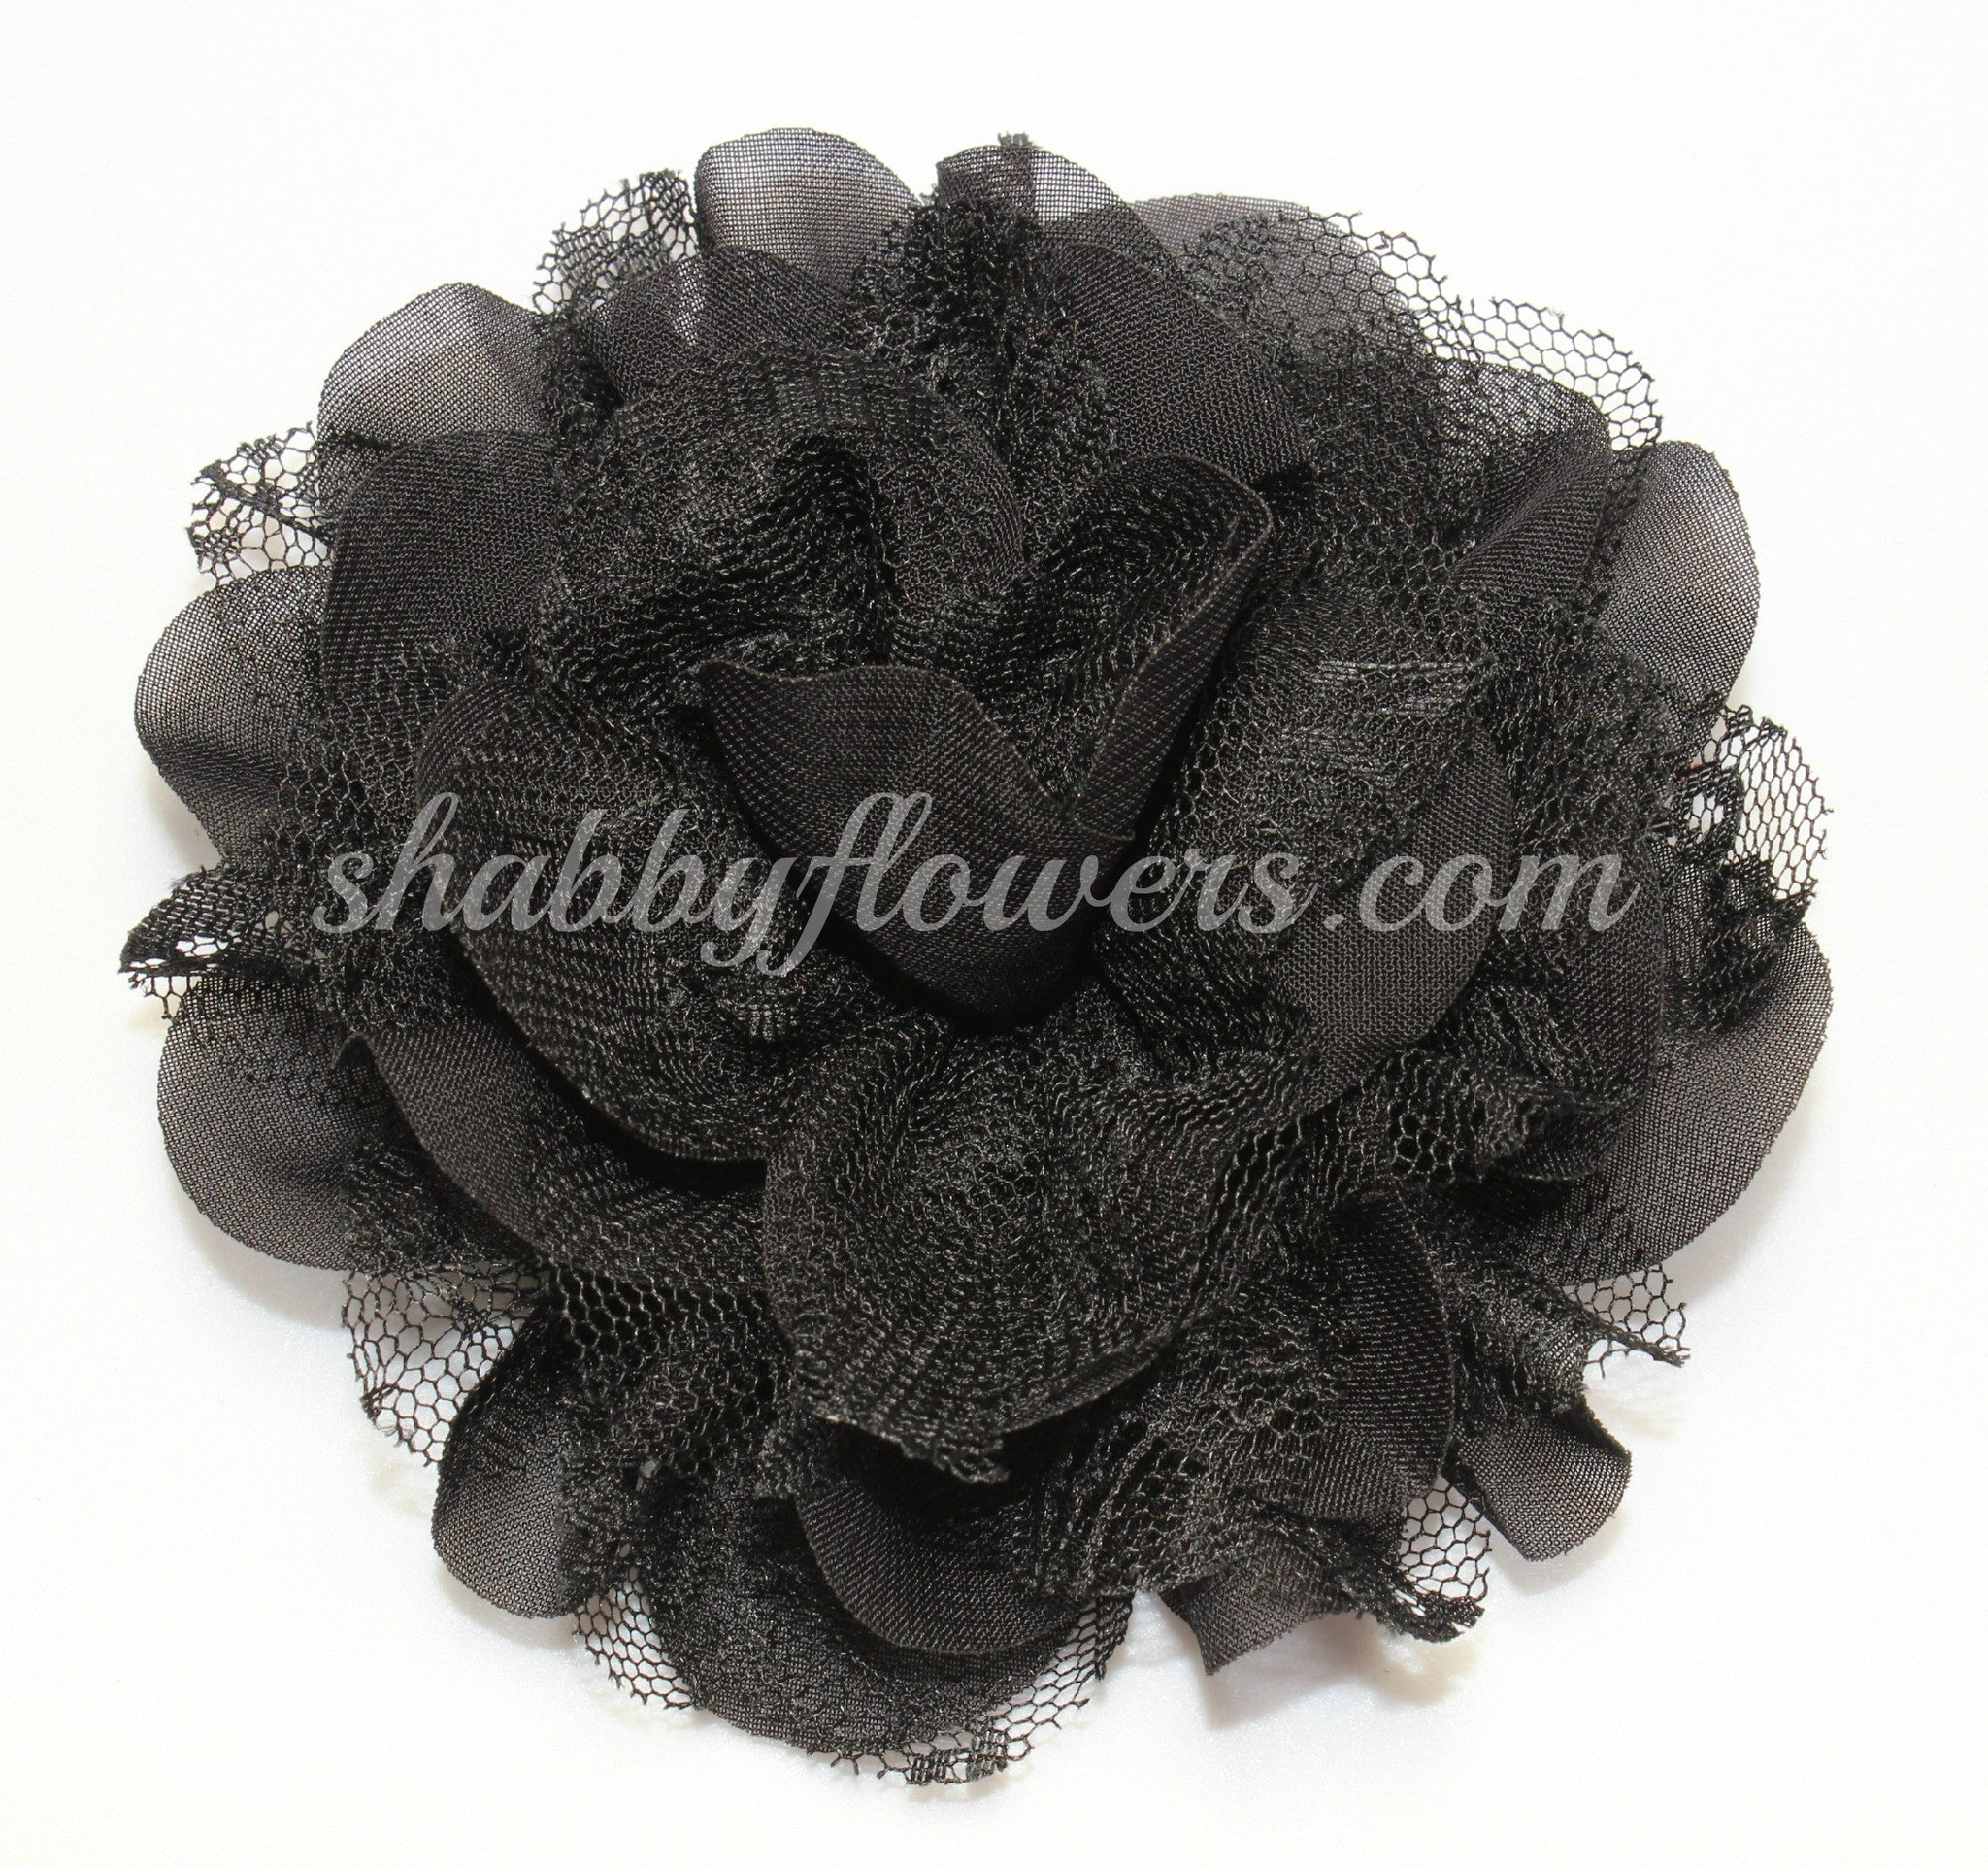 Chiffon and Lace Flower - Black - shabbyflowers.com